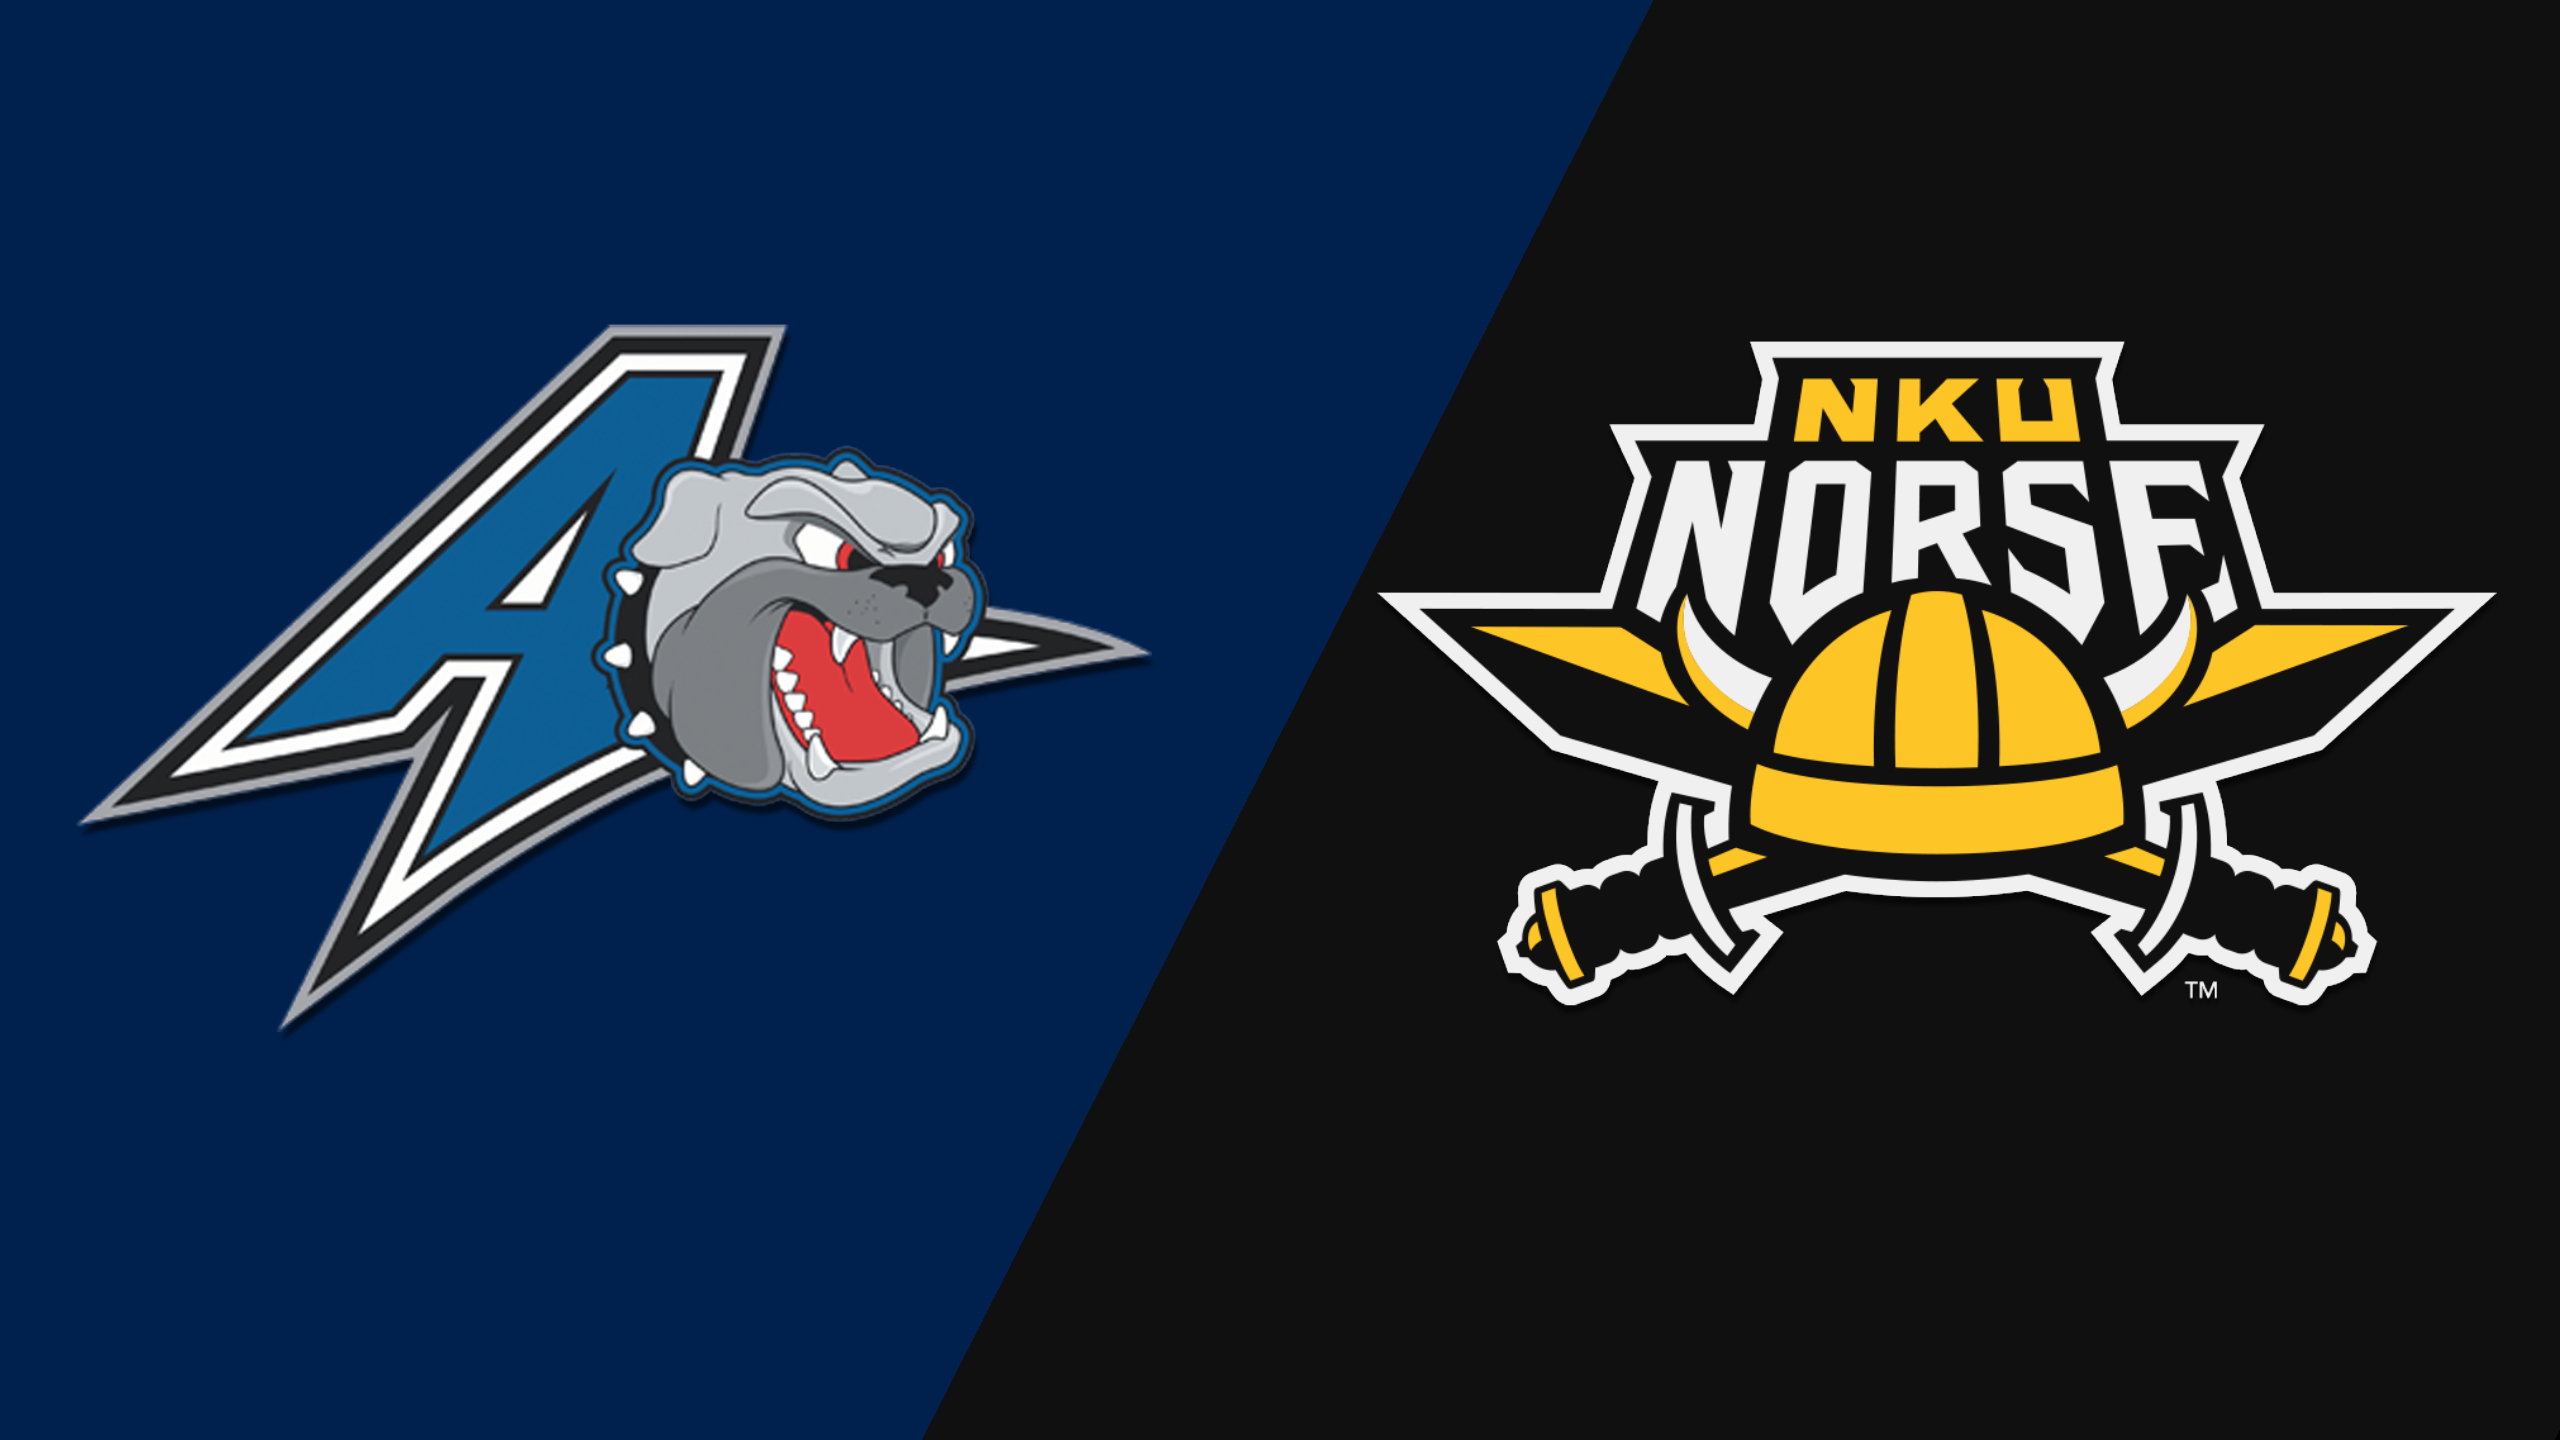 UNC Asheville vs. Northern Kentucky (M Basketball)